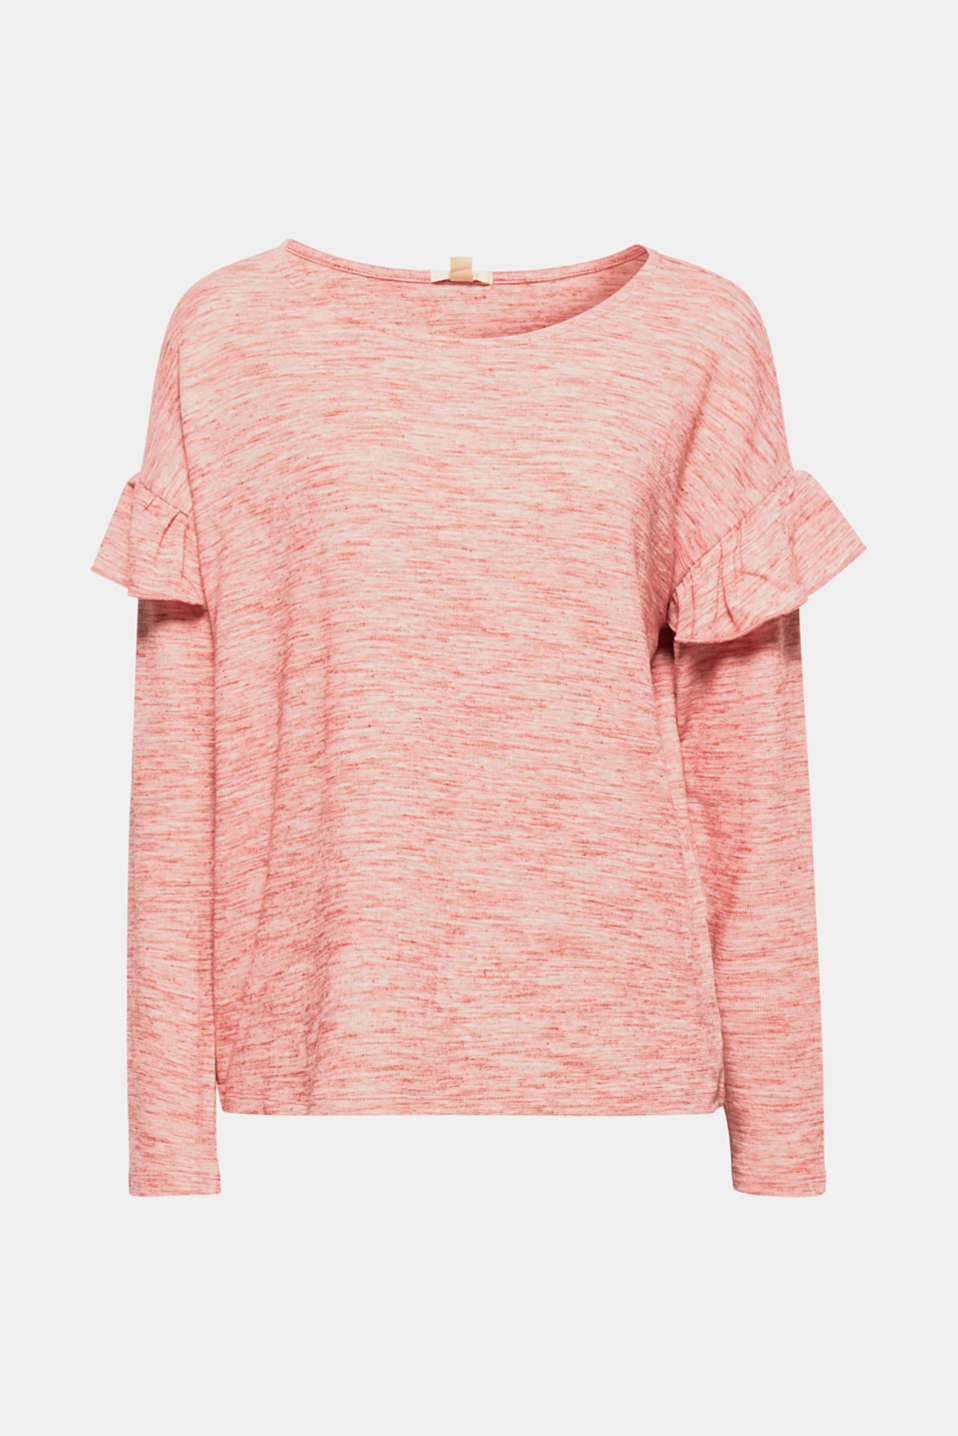 Fab fusion: the sporty, melange slub jersey and pretty sleeve frills make this long sleeve top bang on trend!